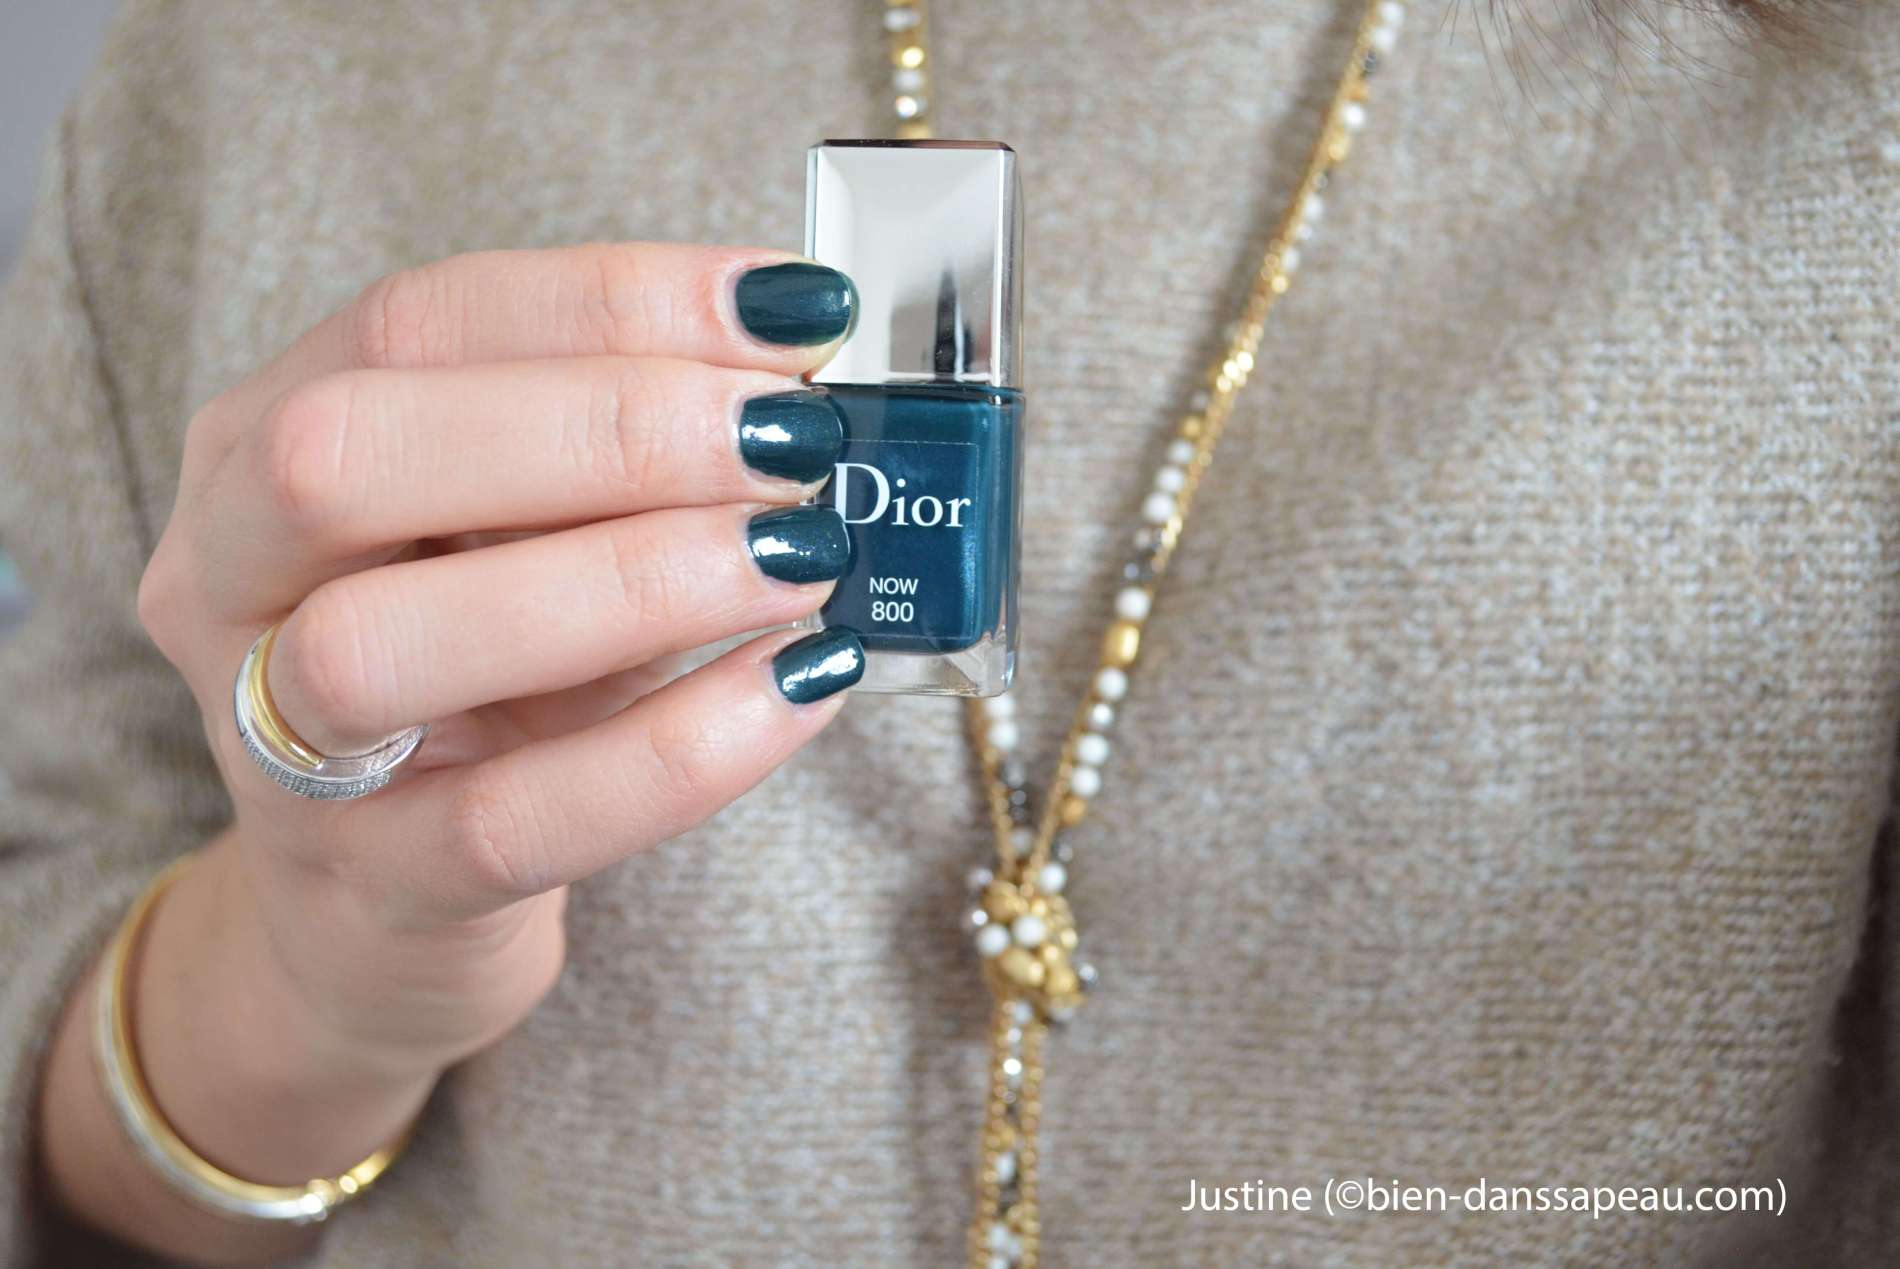 now dior